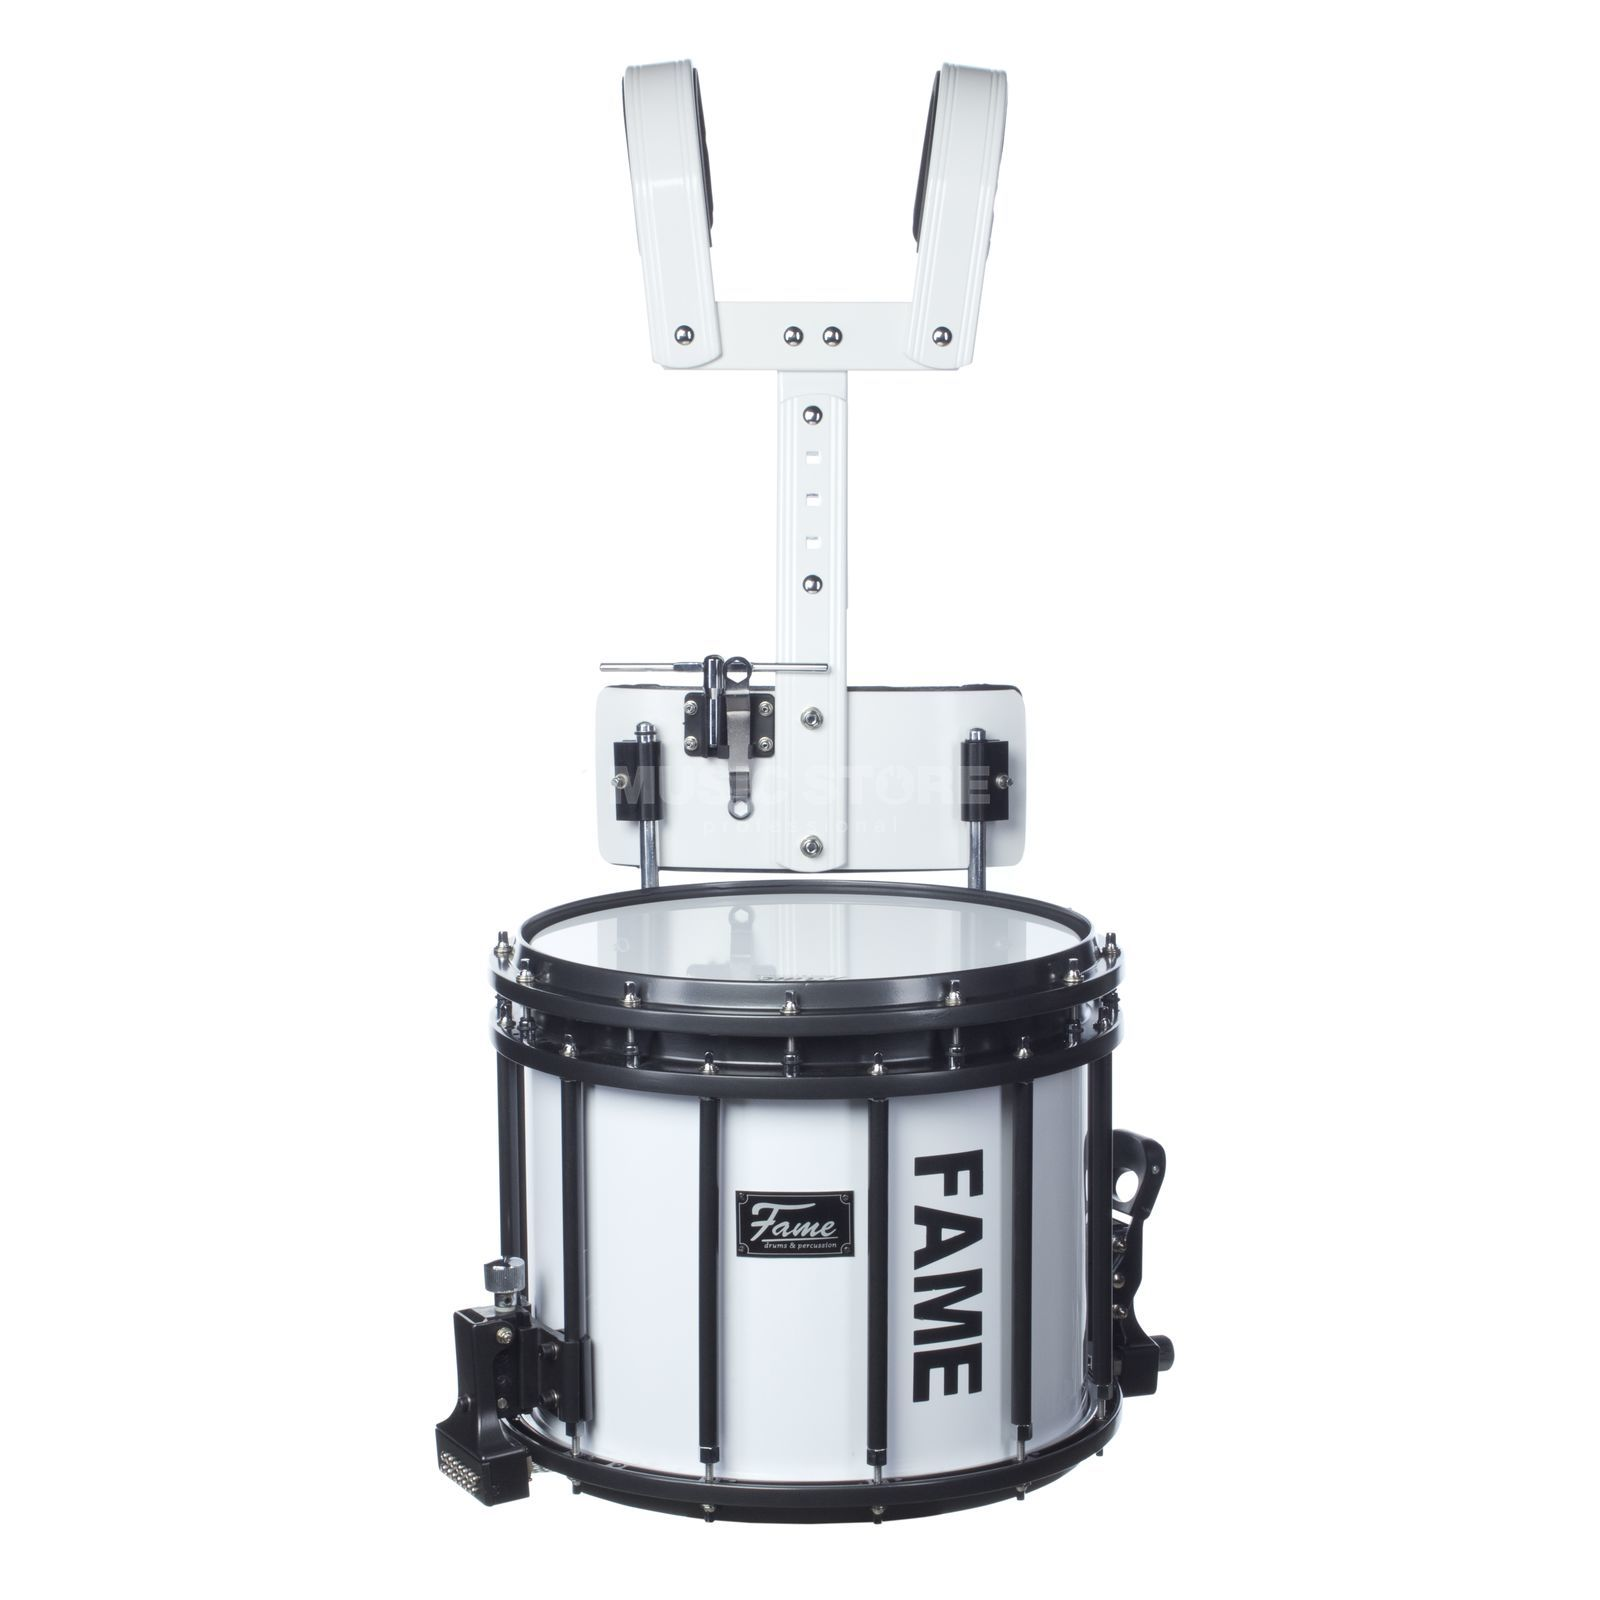 "Fame Prof.A Marching Snare 14x12"" Birch, inkl. Tragegestell Produktbild"